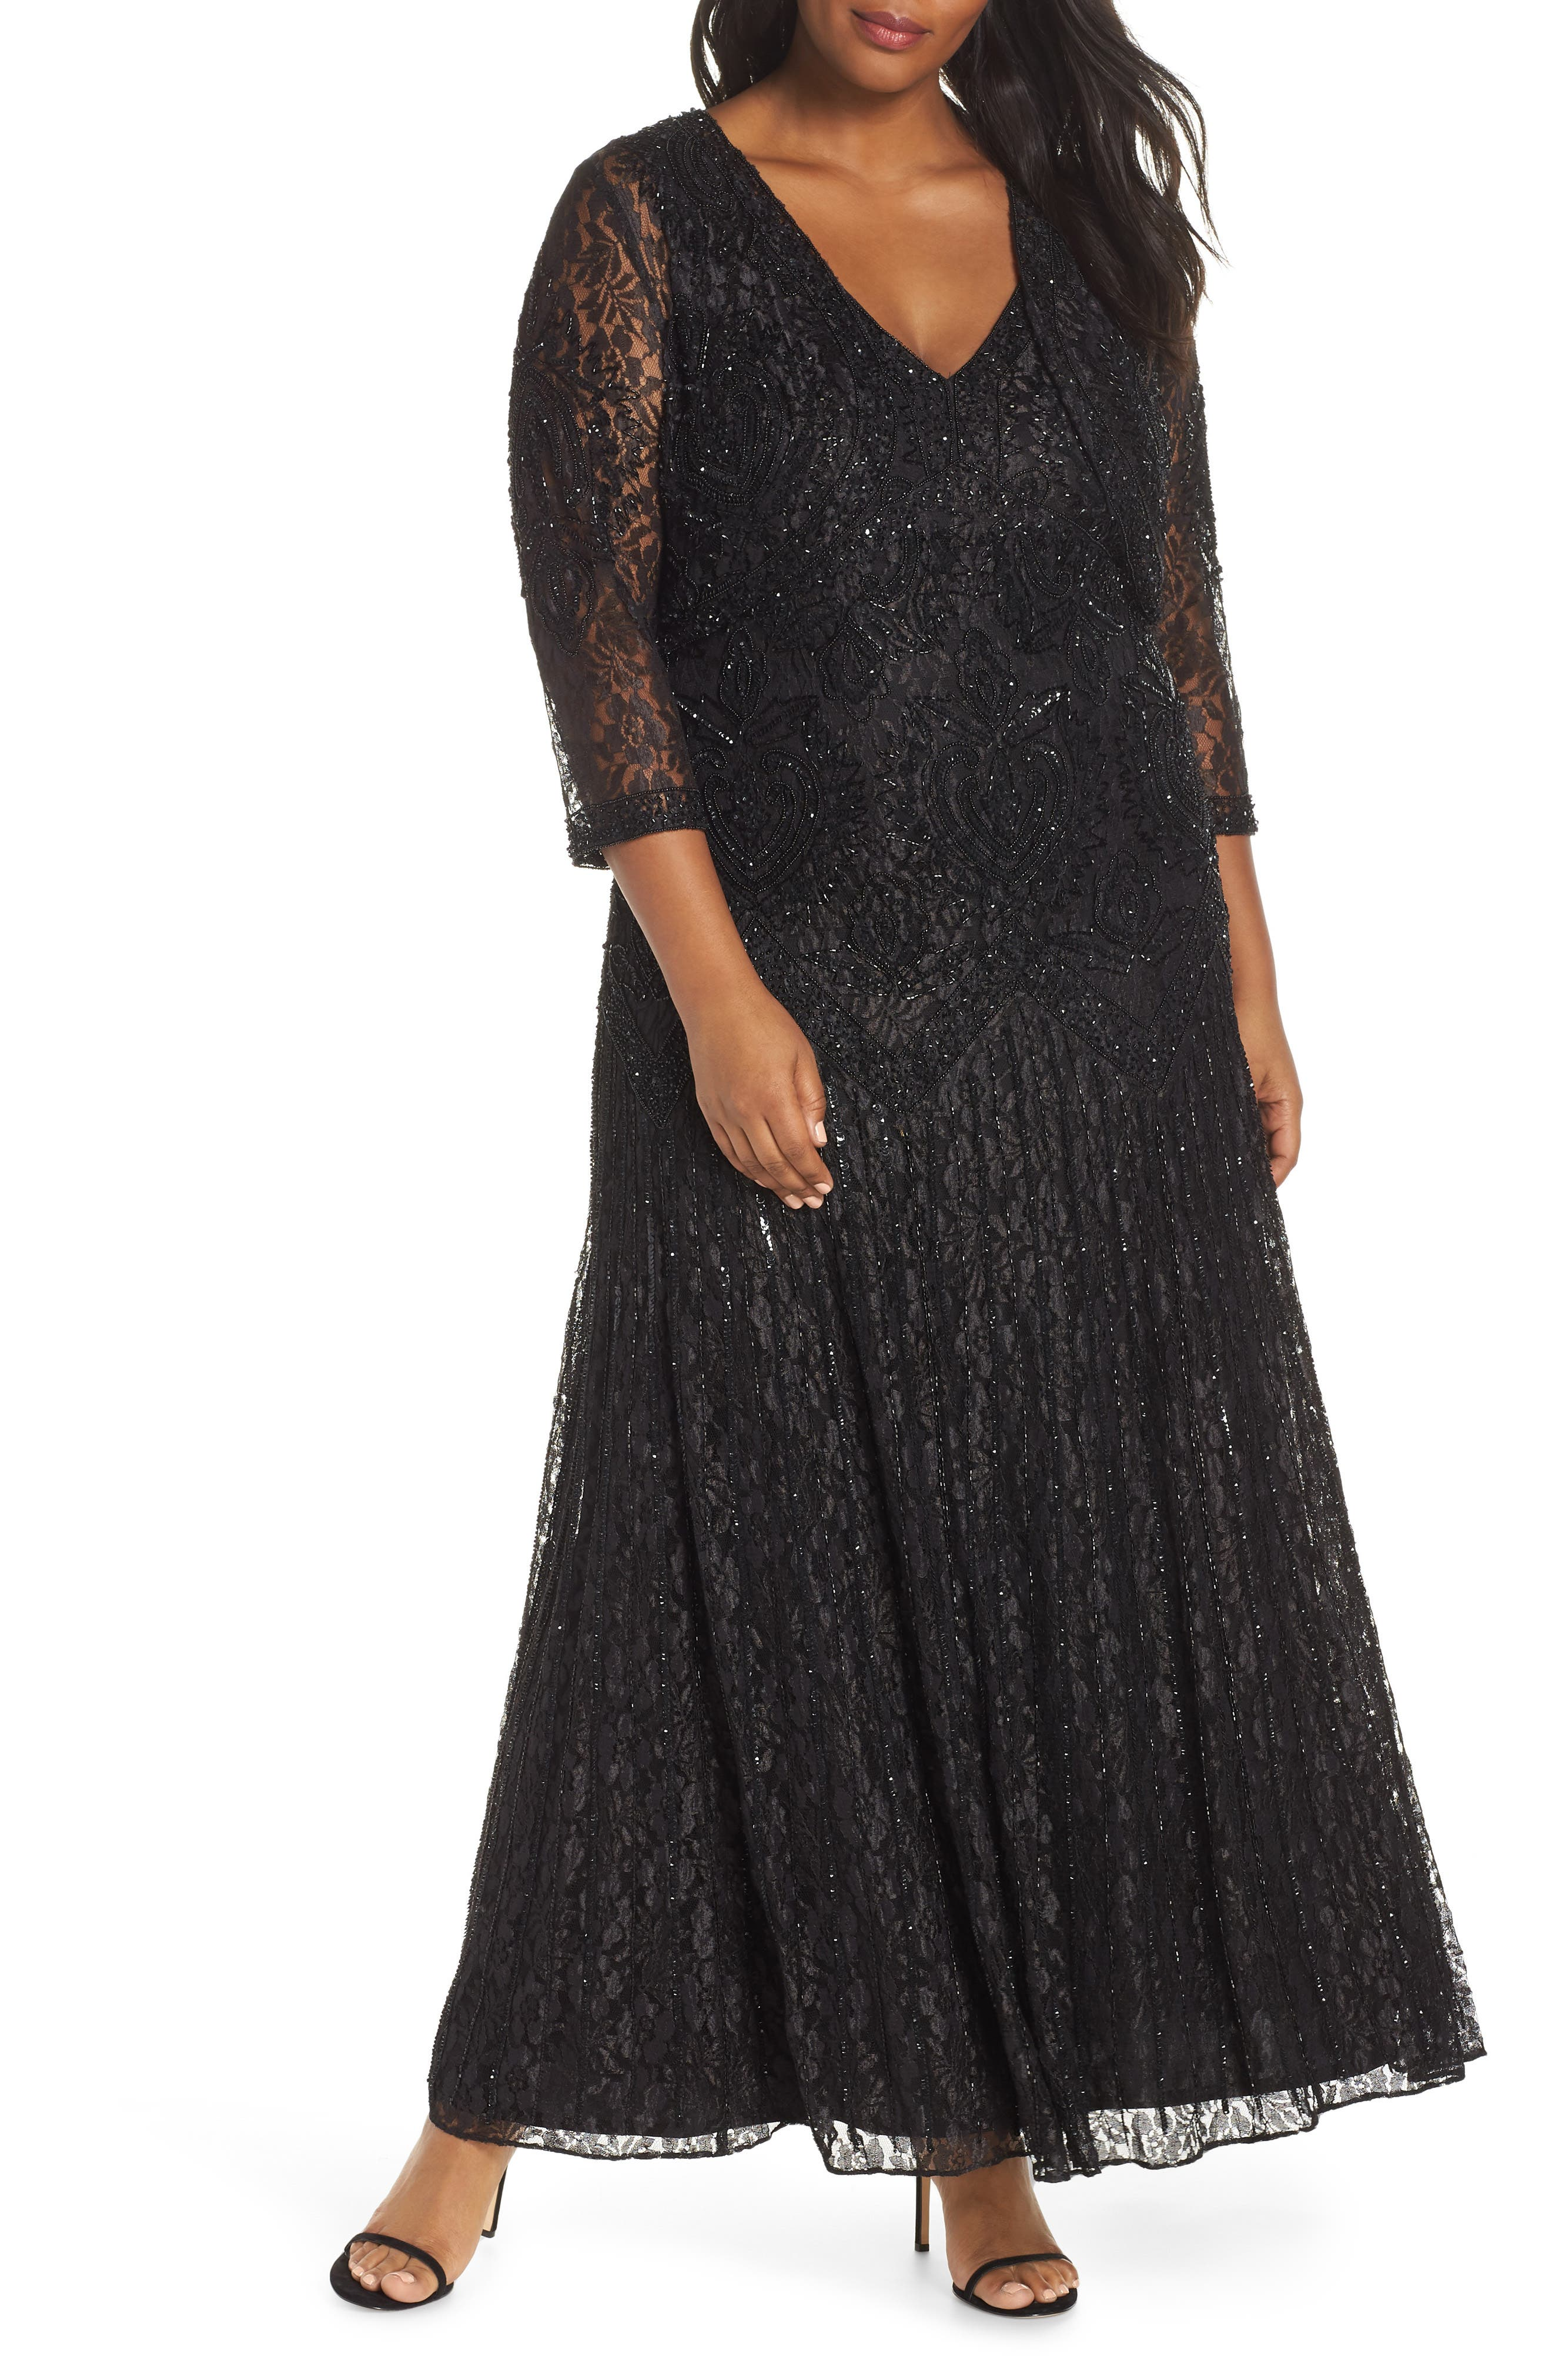 1930s Dresses | 30s Art Deco Dress Plus Size Womens Pisarro Nights Beaded Lace Evening Dress With Bolero $248.00 AT vintagedancer.com